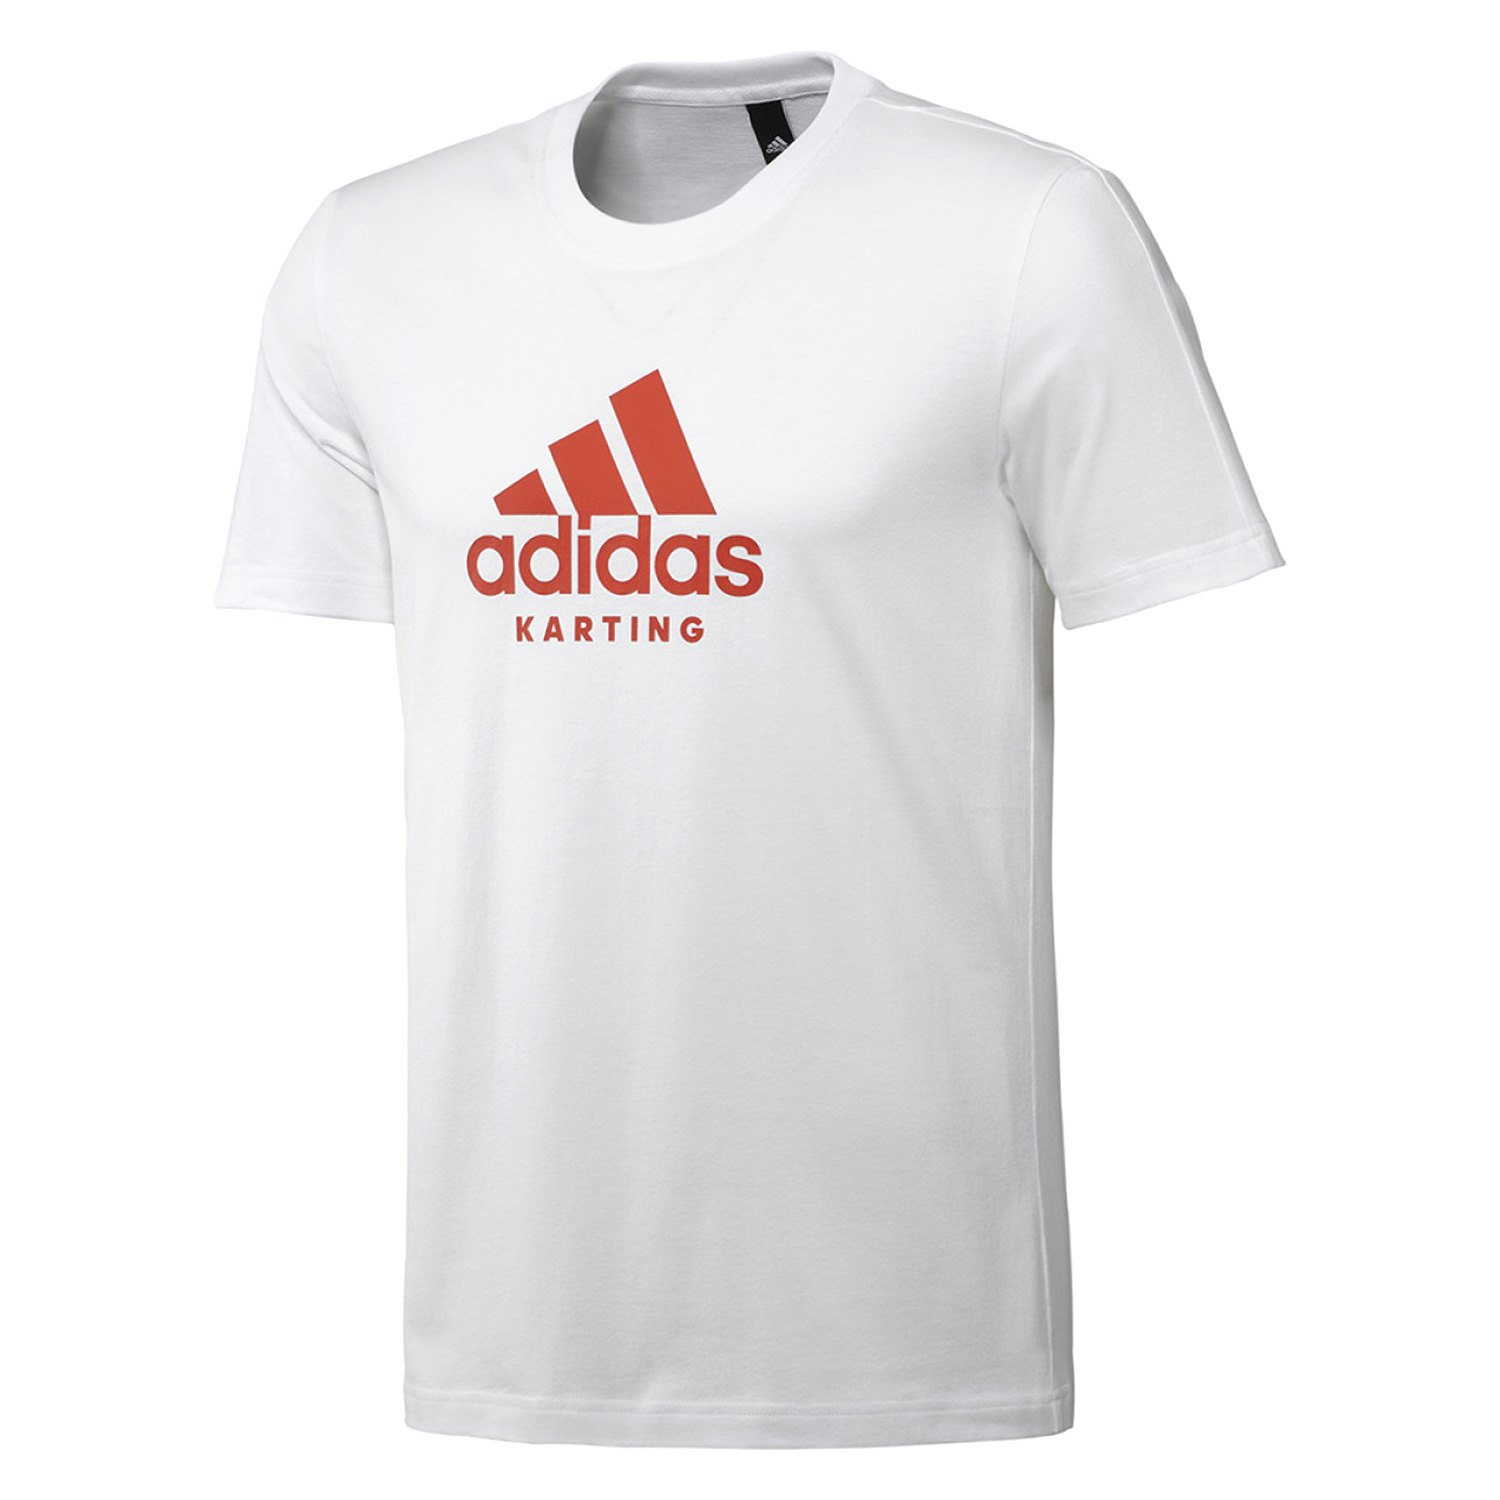 attractive price new list 2018 sneakers adidas® - Karting Tee Shirt